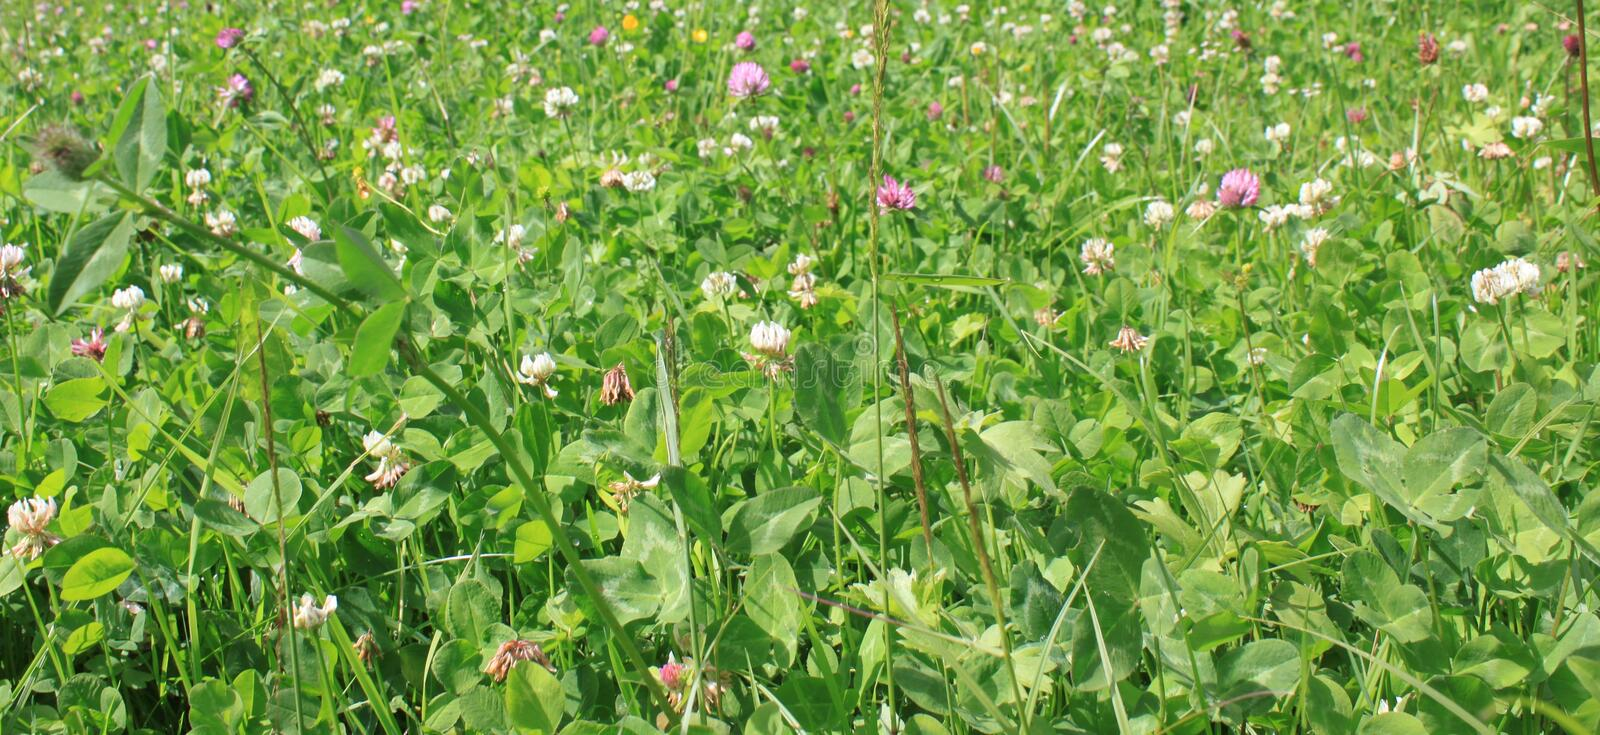 Download Meadow stock photo. Image of floral, natural, beauty - 21116698